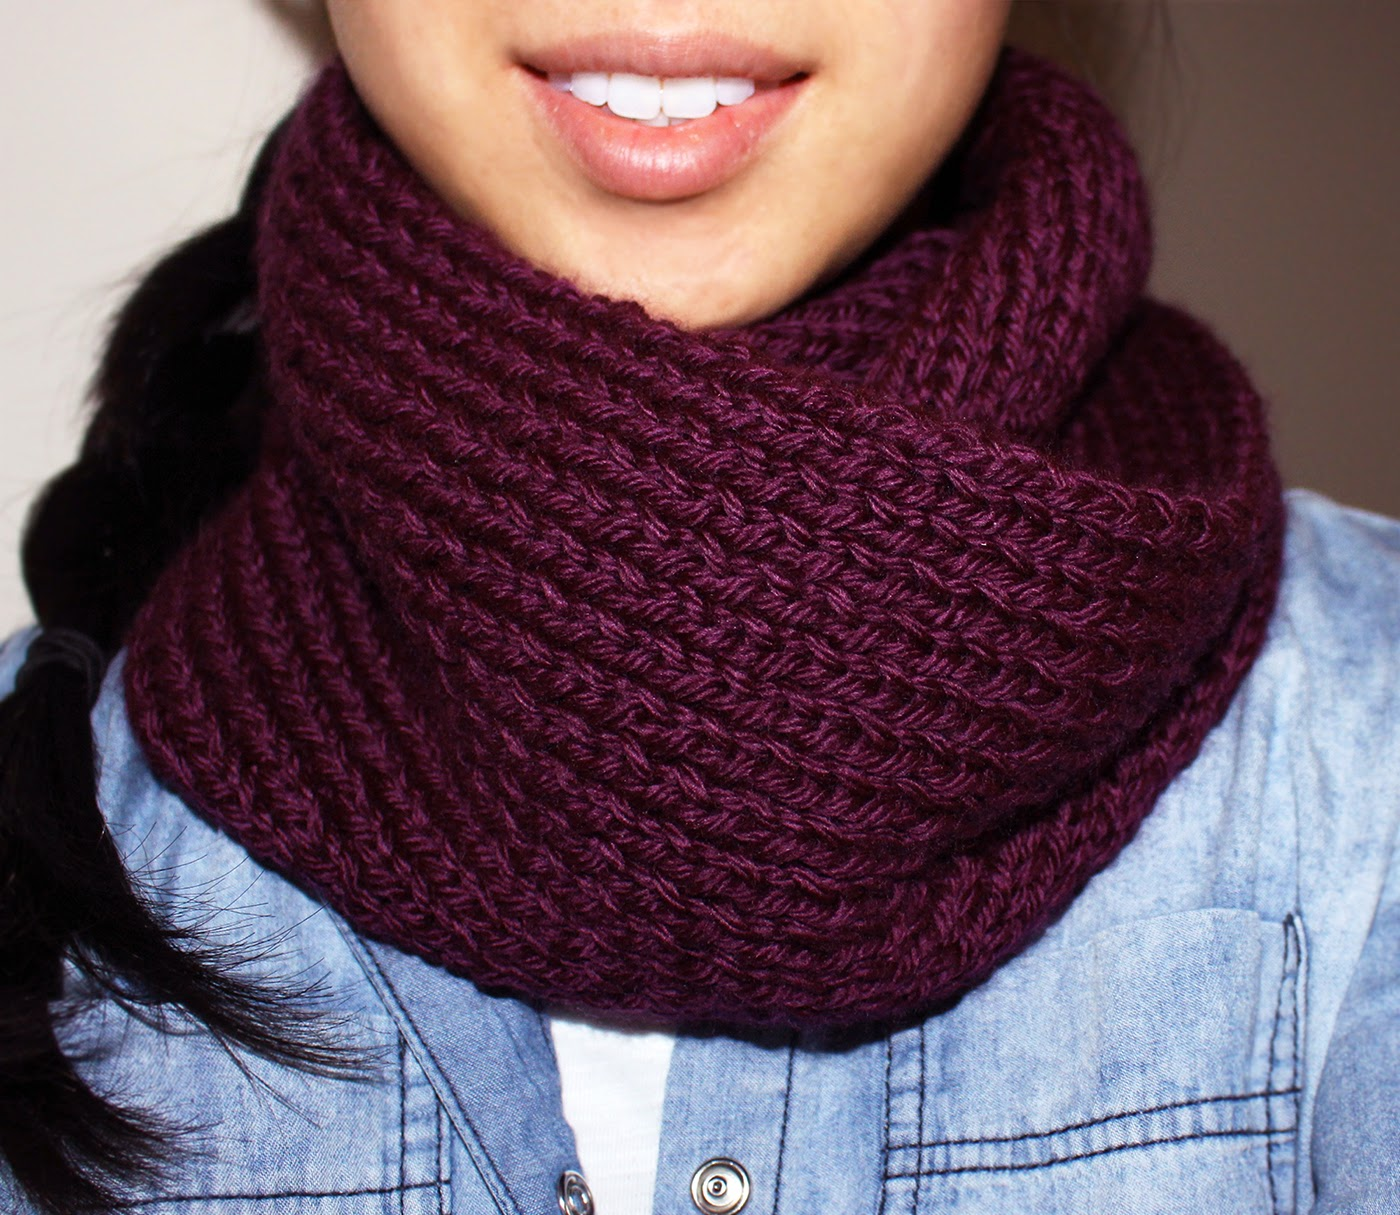 Knitting Pattern Of Scarf : Purllin: Acai Infinity Circle Scarf [free knitting pattern]